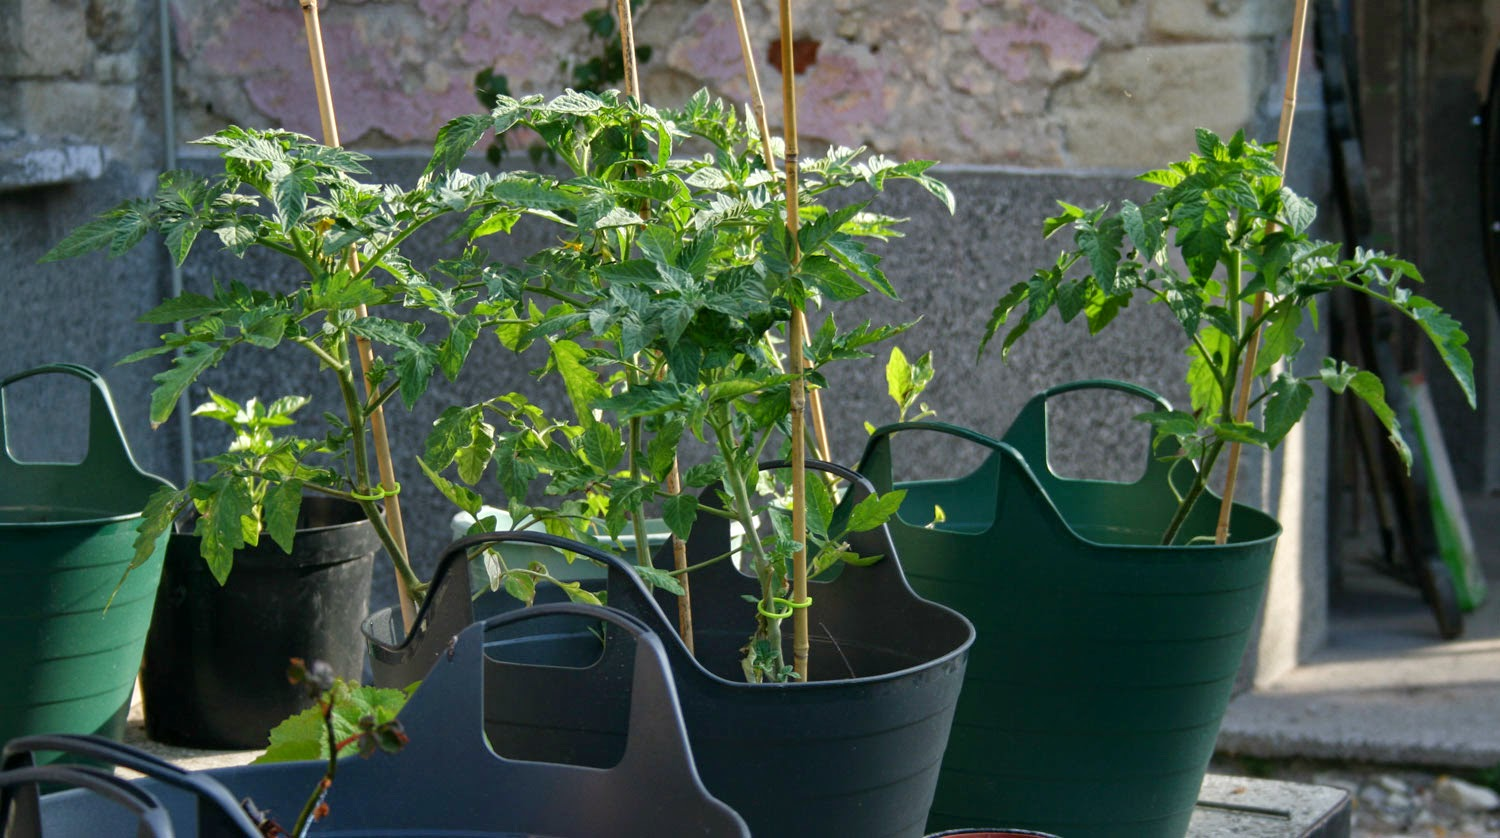 Lovely happy tomato plants